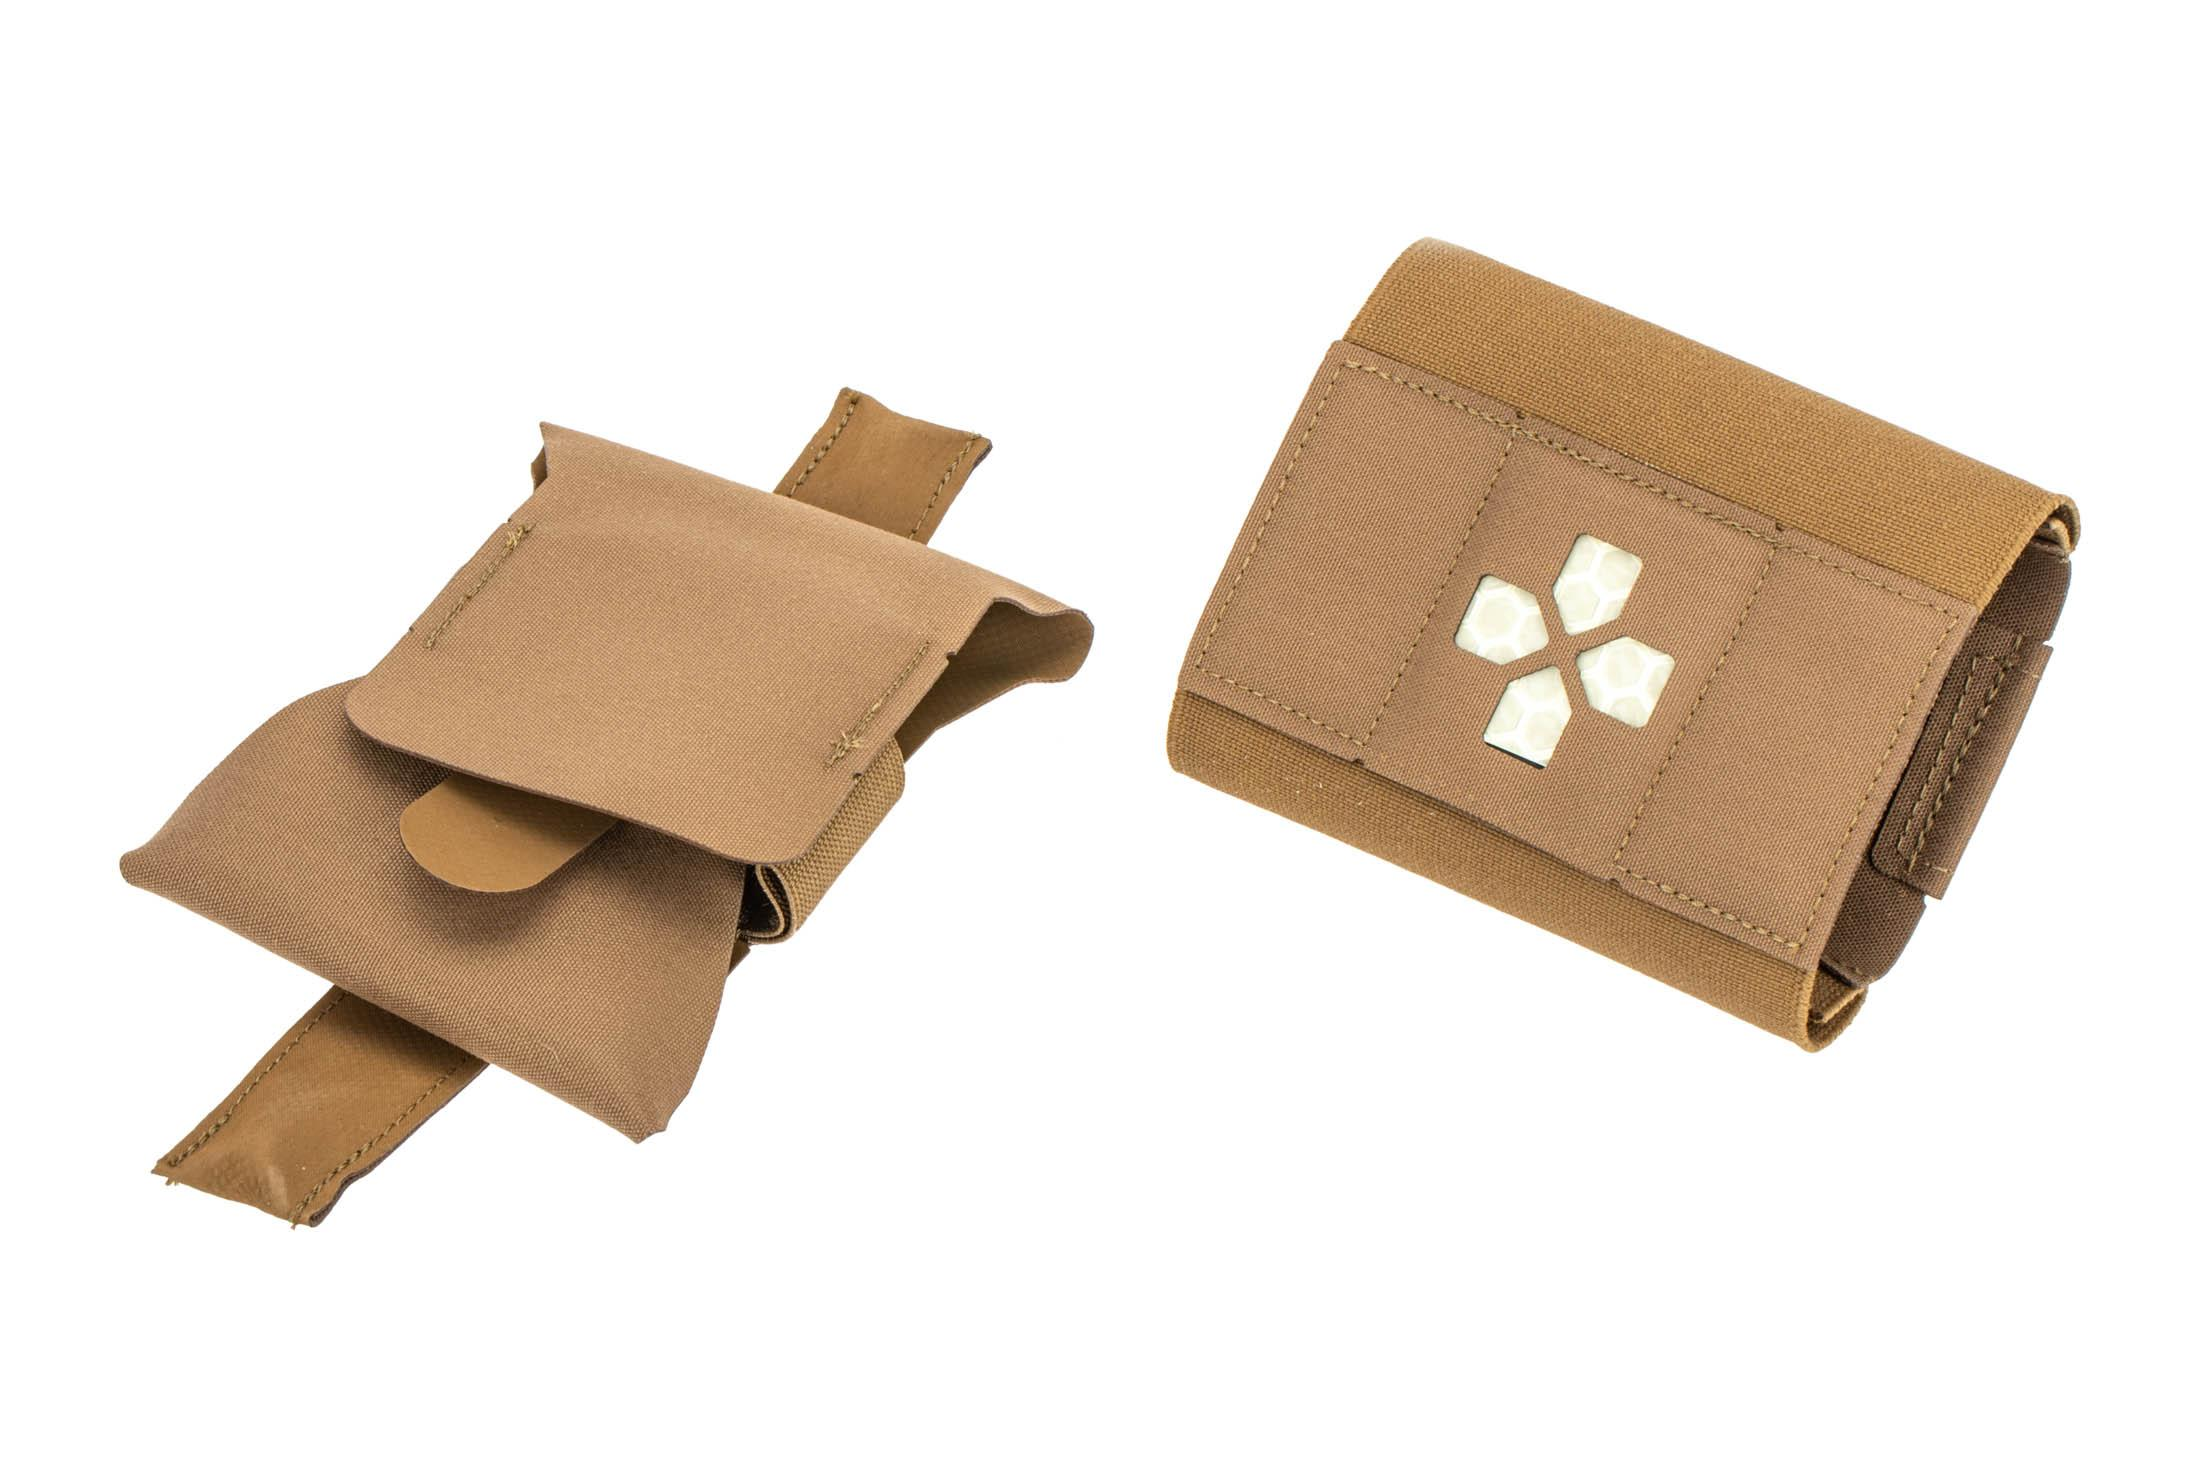 The Blue Force Gear Micro TKN Brown Medical Kit separates into two pouches